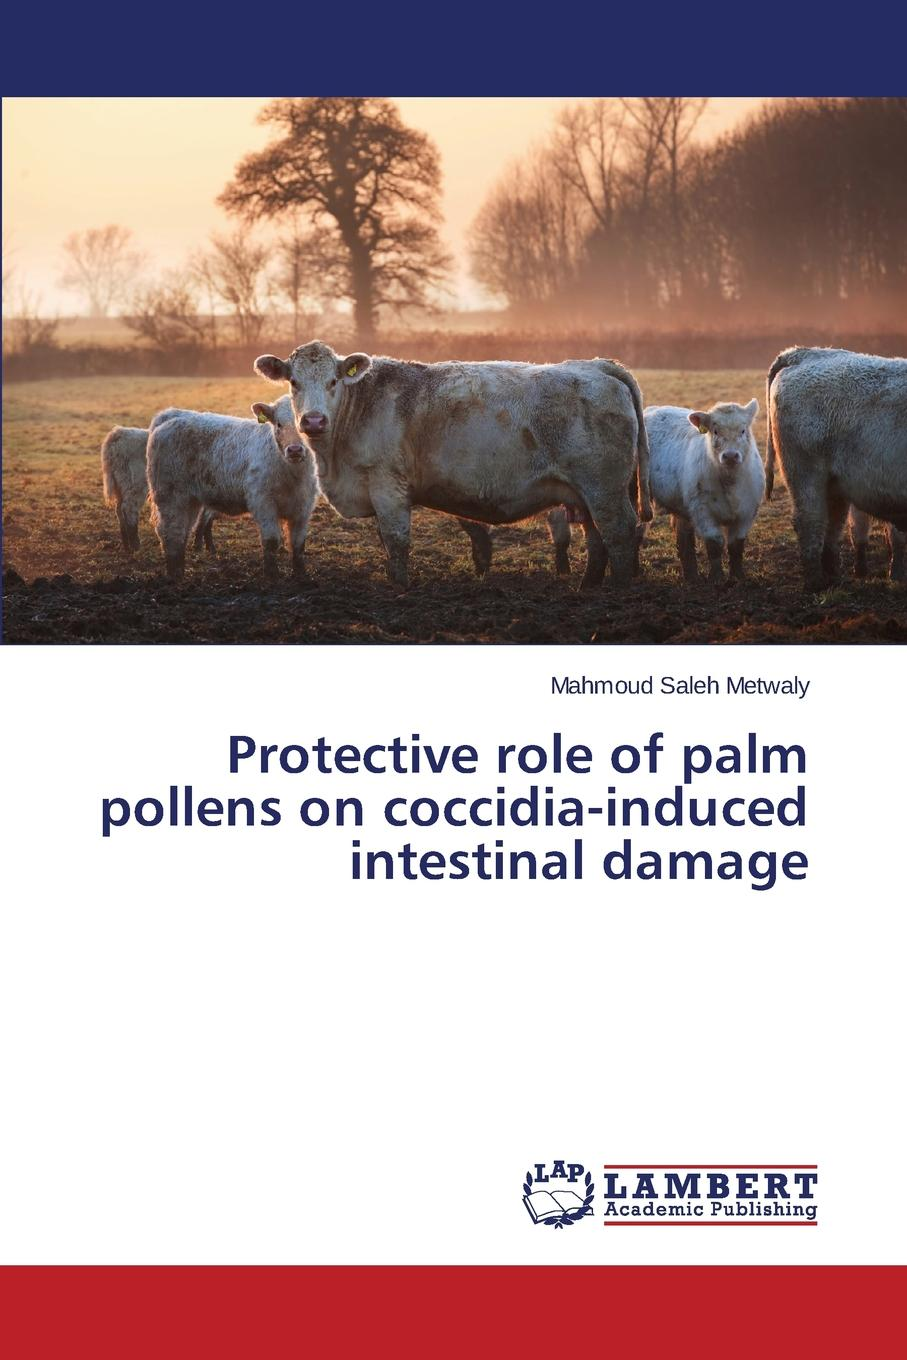 Metwaly Mahmoud Saleh Protective role of palm pollens on coccidia-induced intestinal damage effect of rosemary extracts on the growth of skin infections